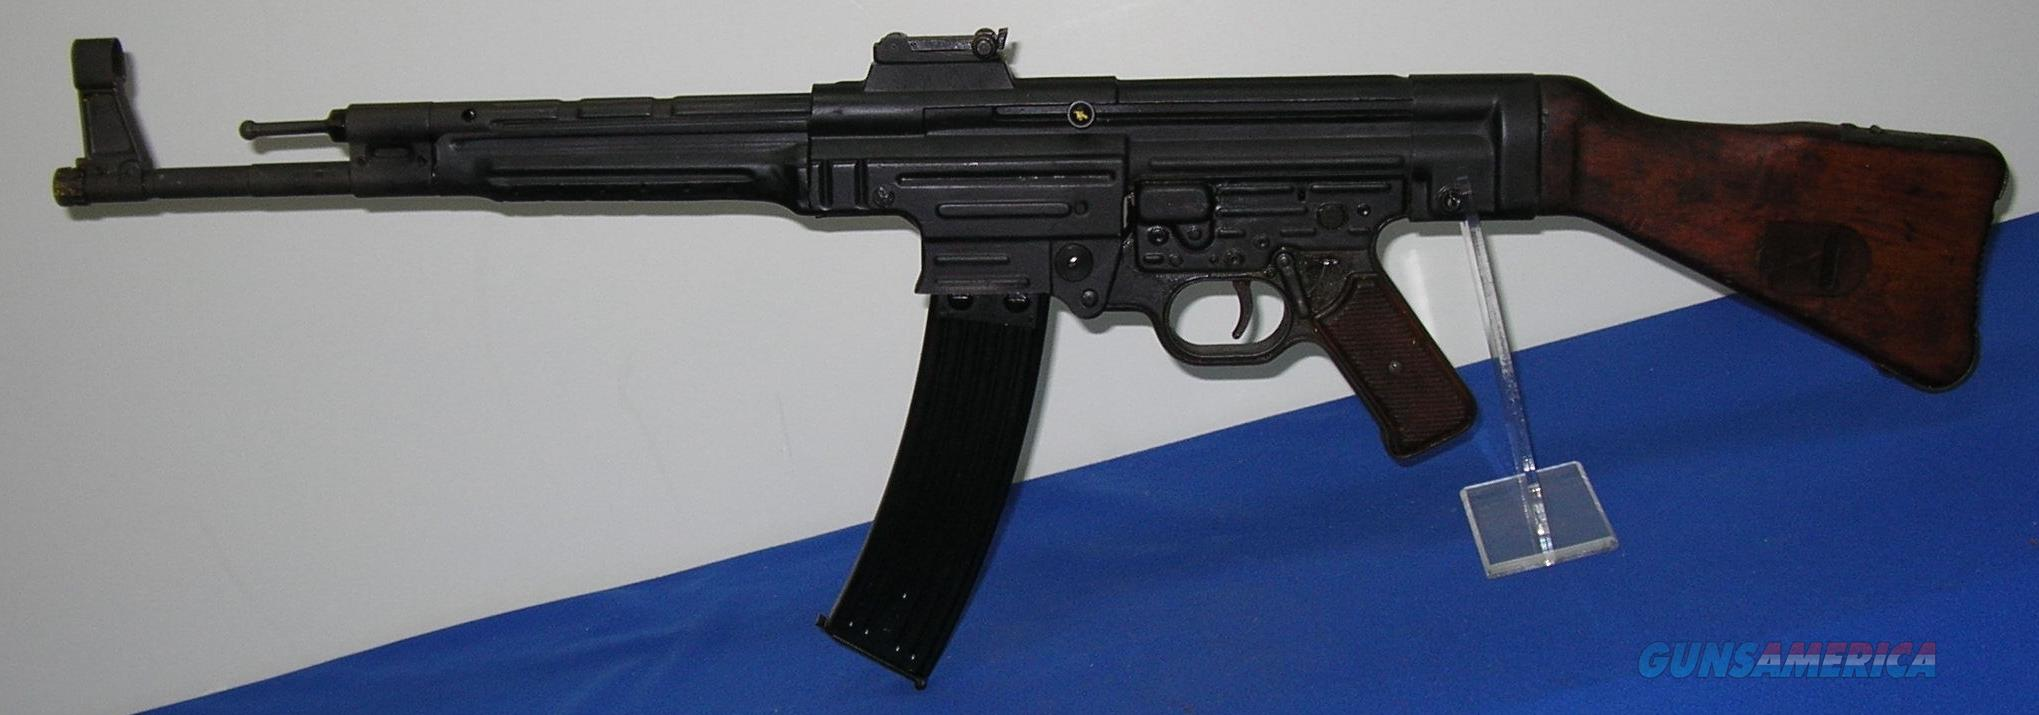 German MP-44 Dummy Machine Gun